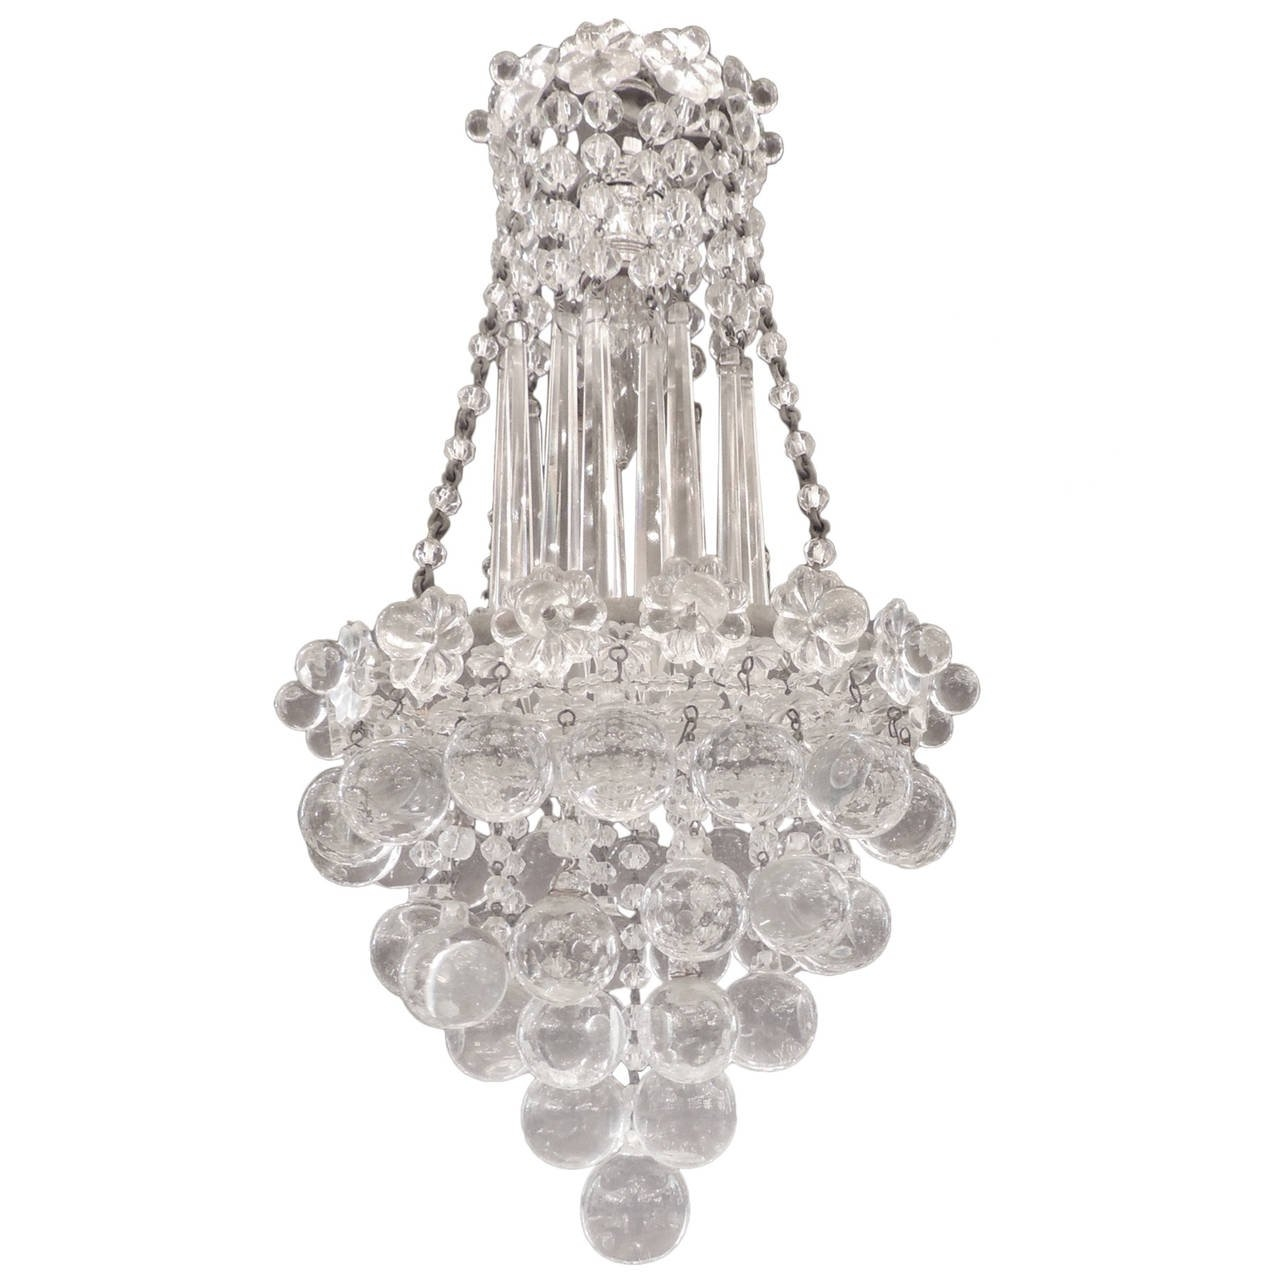 Early 20th C Venetian Waterfall Crystal Chandelier At 1stdibs In Waterfall Crystal Chandelier (Image 6 of 15)